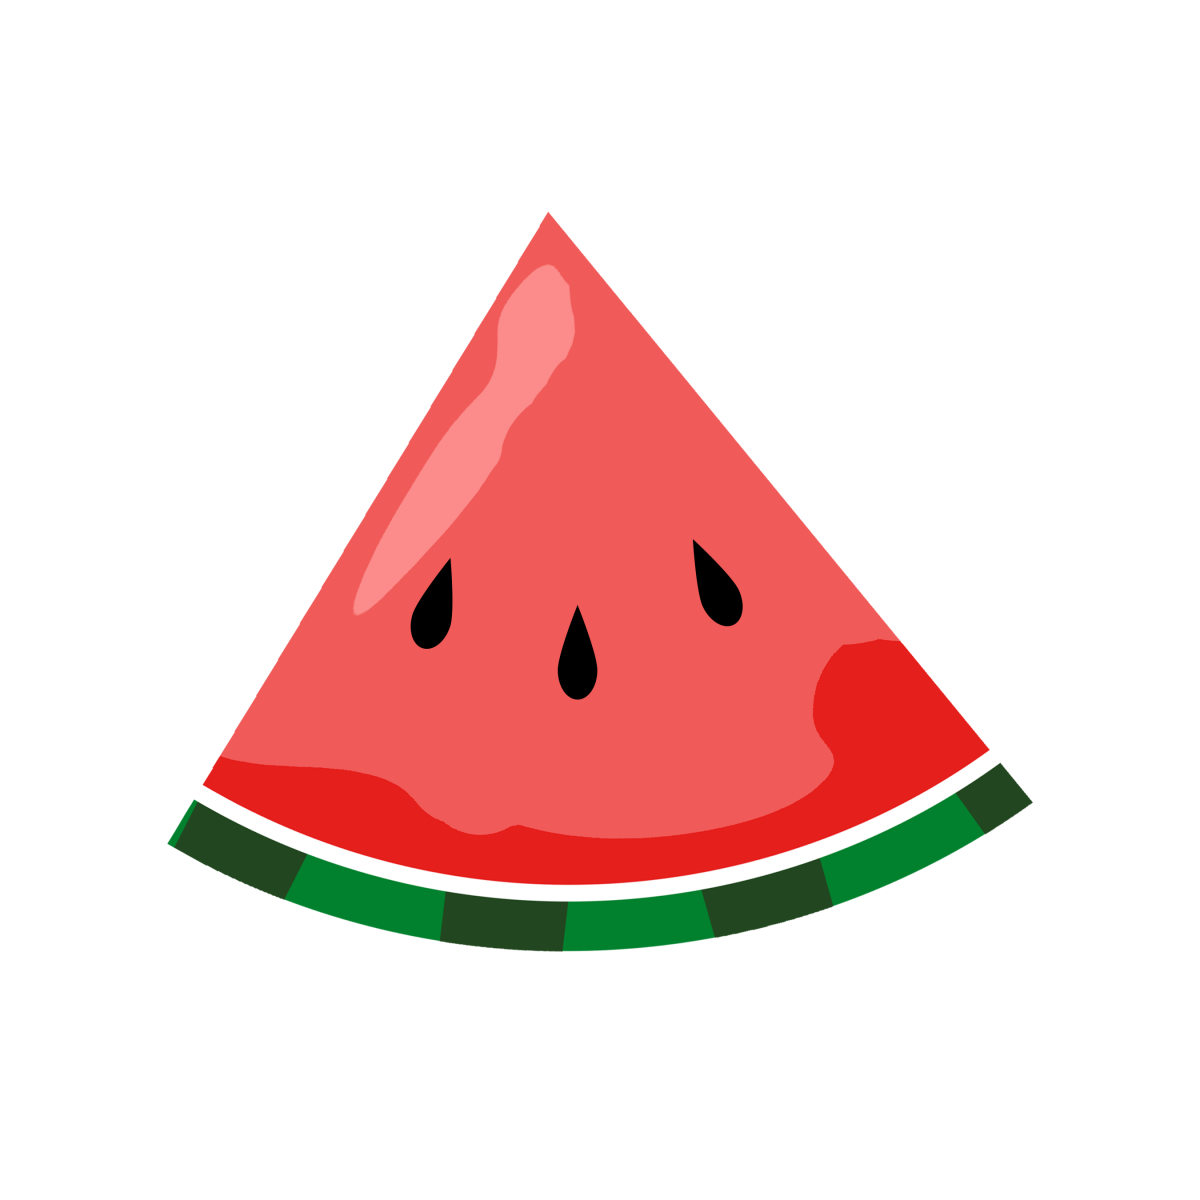 Watermelon clipart #10, Download drawings